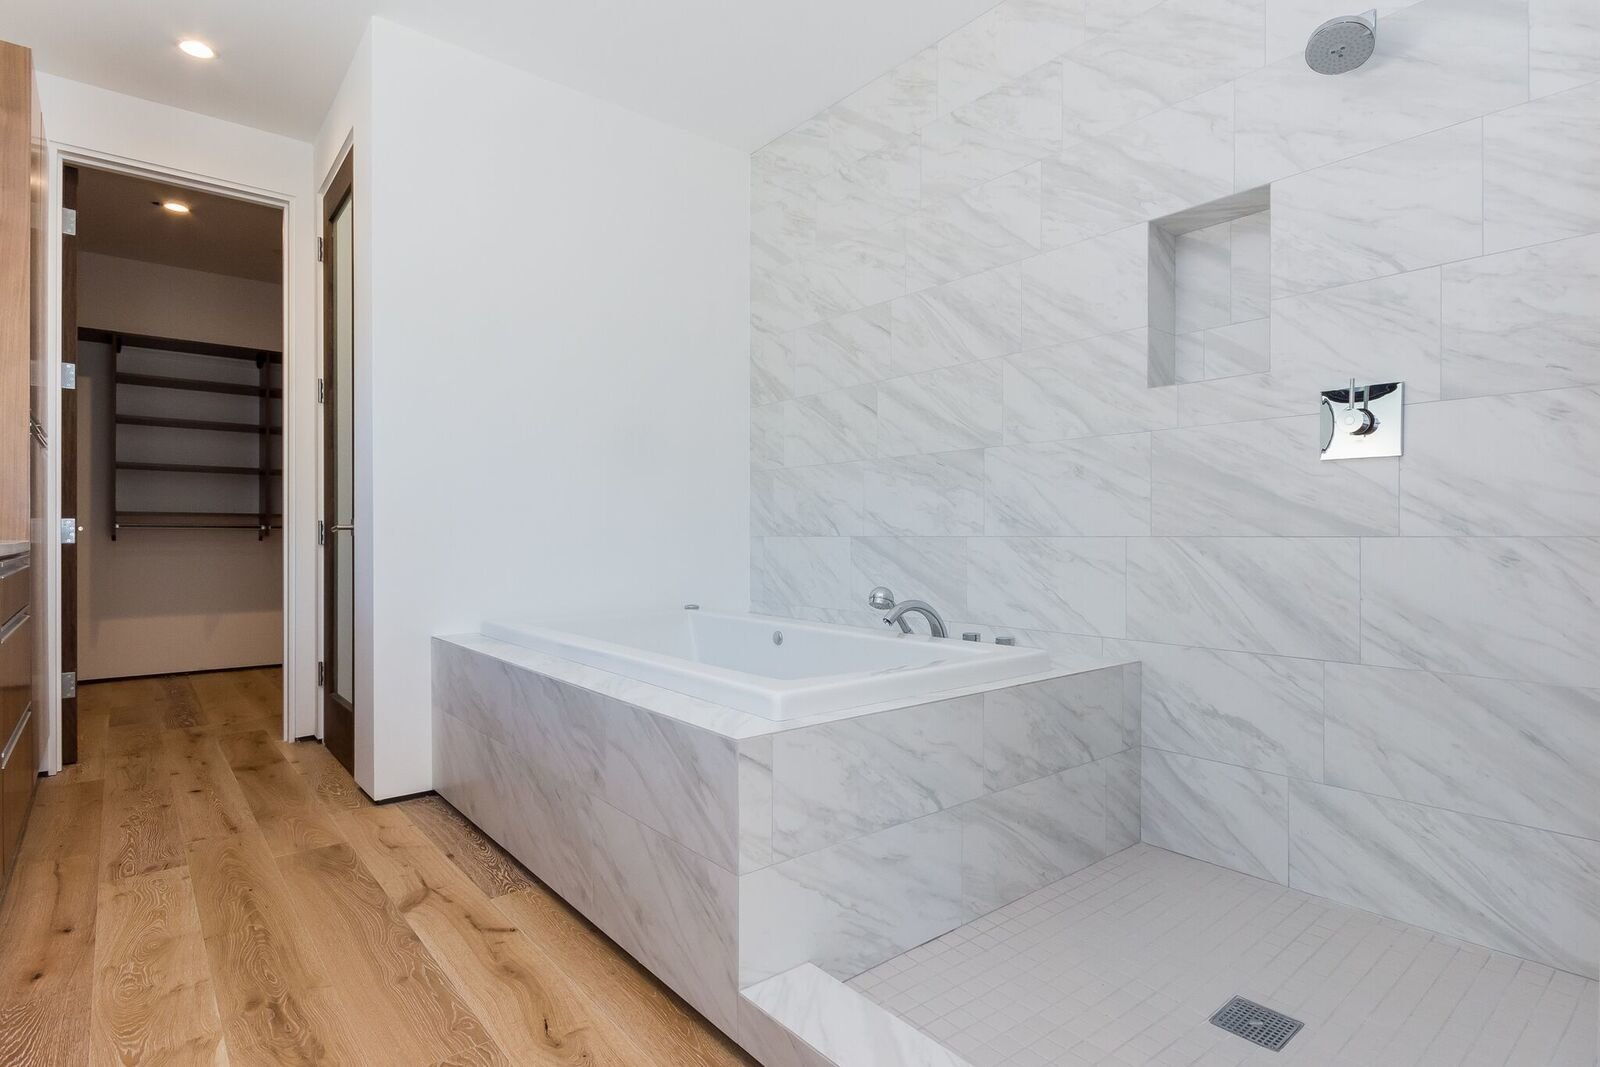 Bath Room, Medium Hardwood Floor, Quartzite Counter, Undermount Sink, Drop In Tub, Whirlpool Tub, Full Shower, Enclosed Shower, Ceiling Lighting, Porcelain Tile Wall, and One Piece Toilet Master Bath with dual shower heads including rain head / jet tub  Mammoth Modern House 1